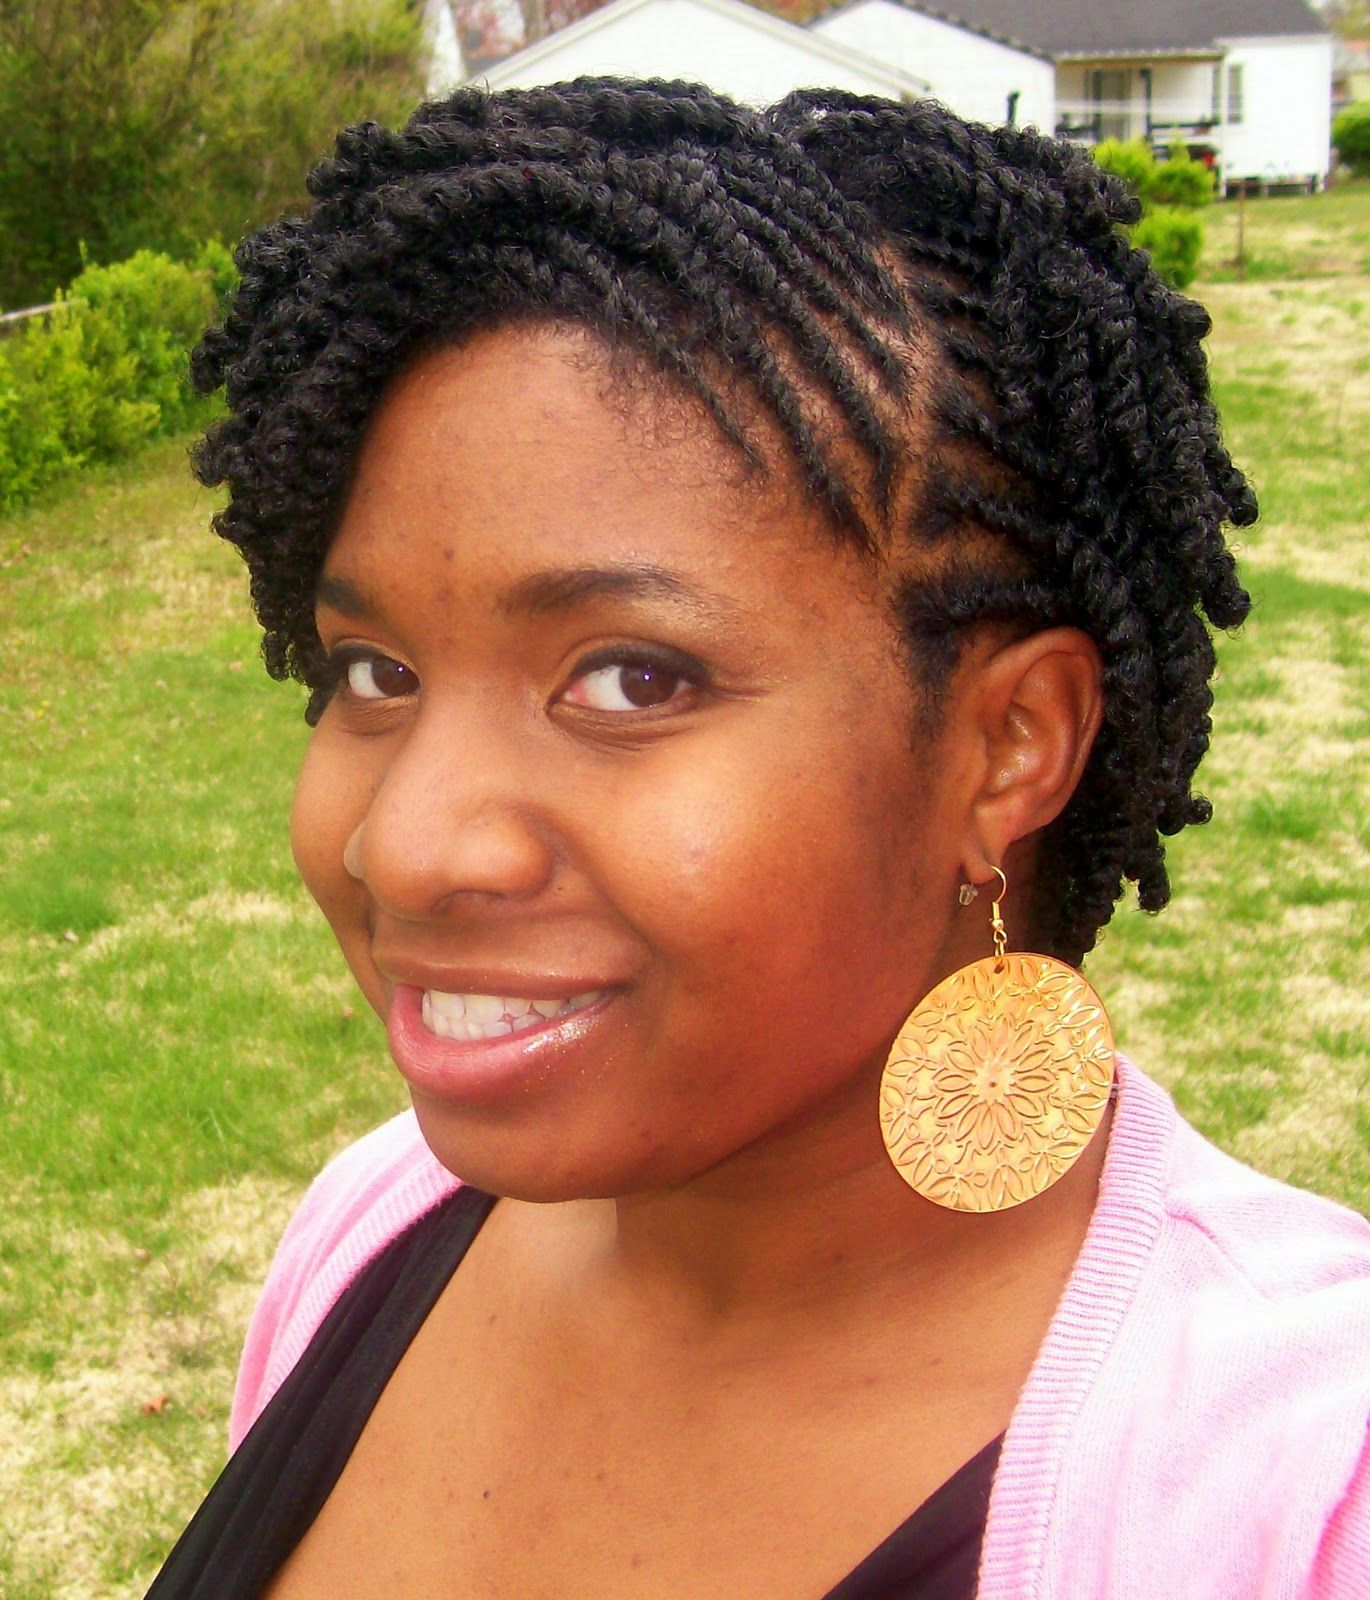 Natural Hair Twist Styles Frostoppa Msgg's Natural Hair Journey And Natural Hair Blog Ain't